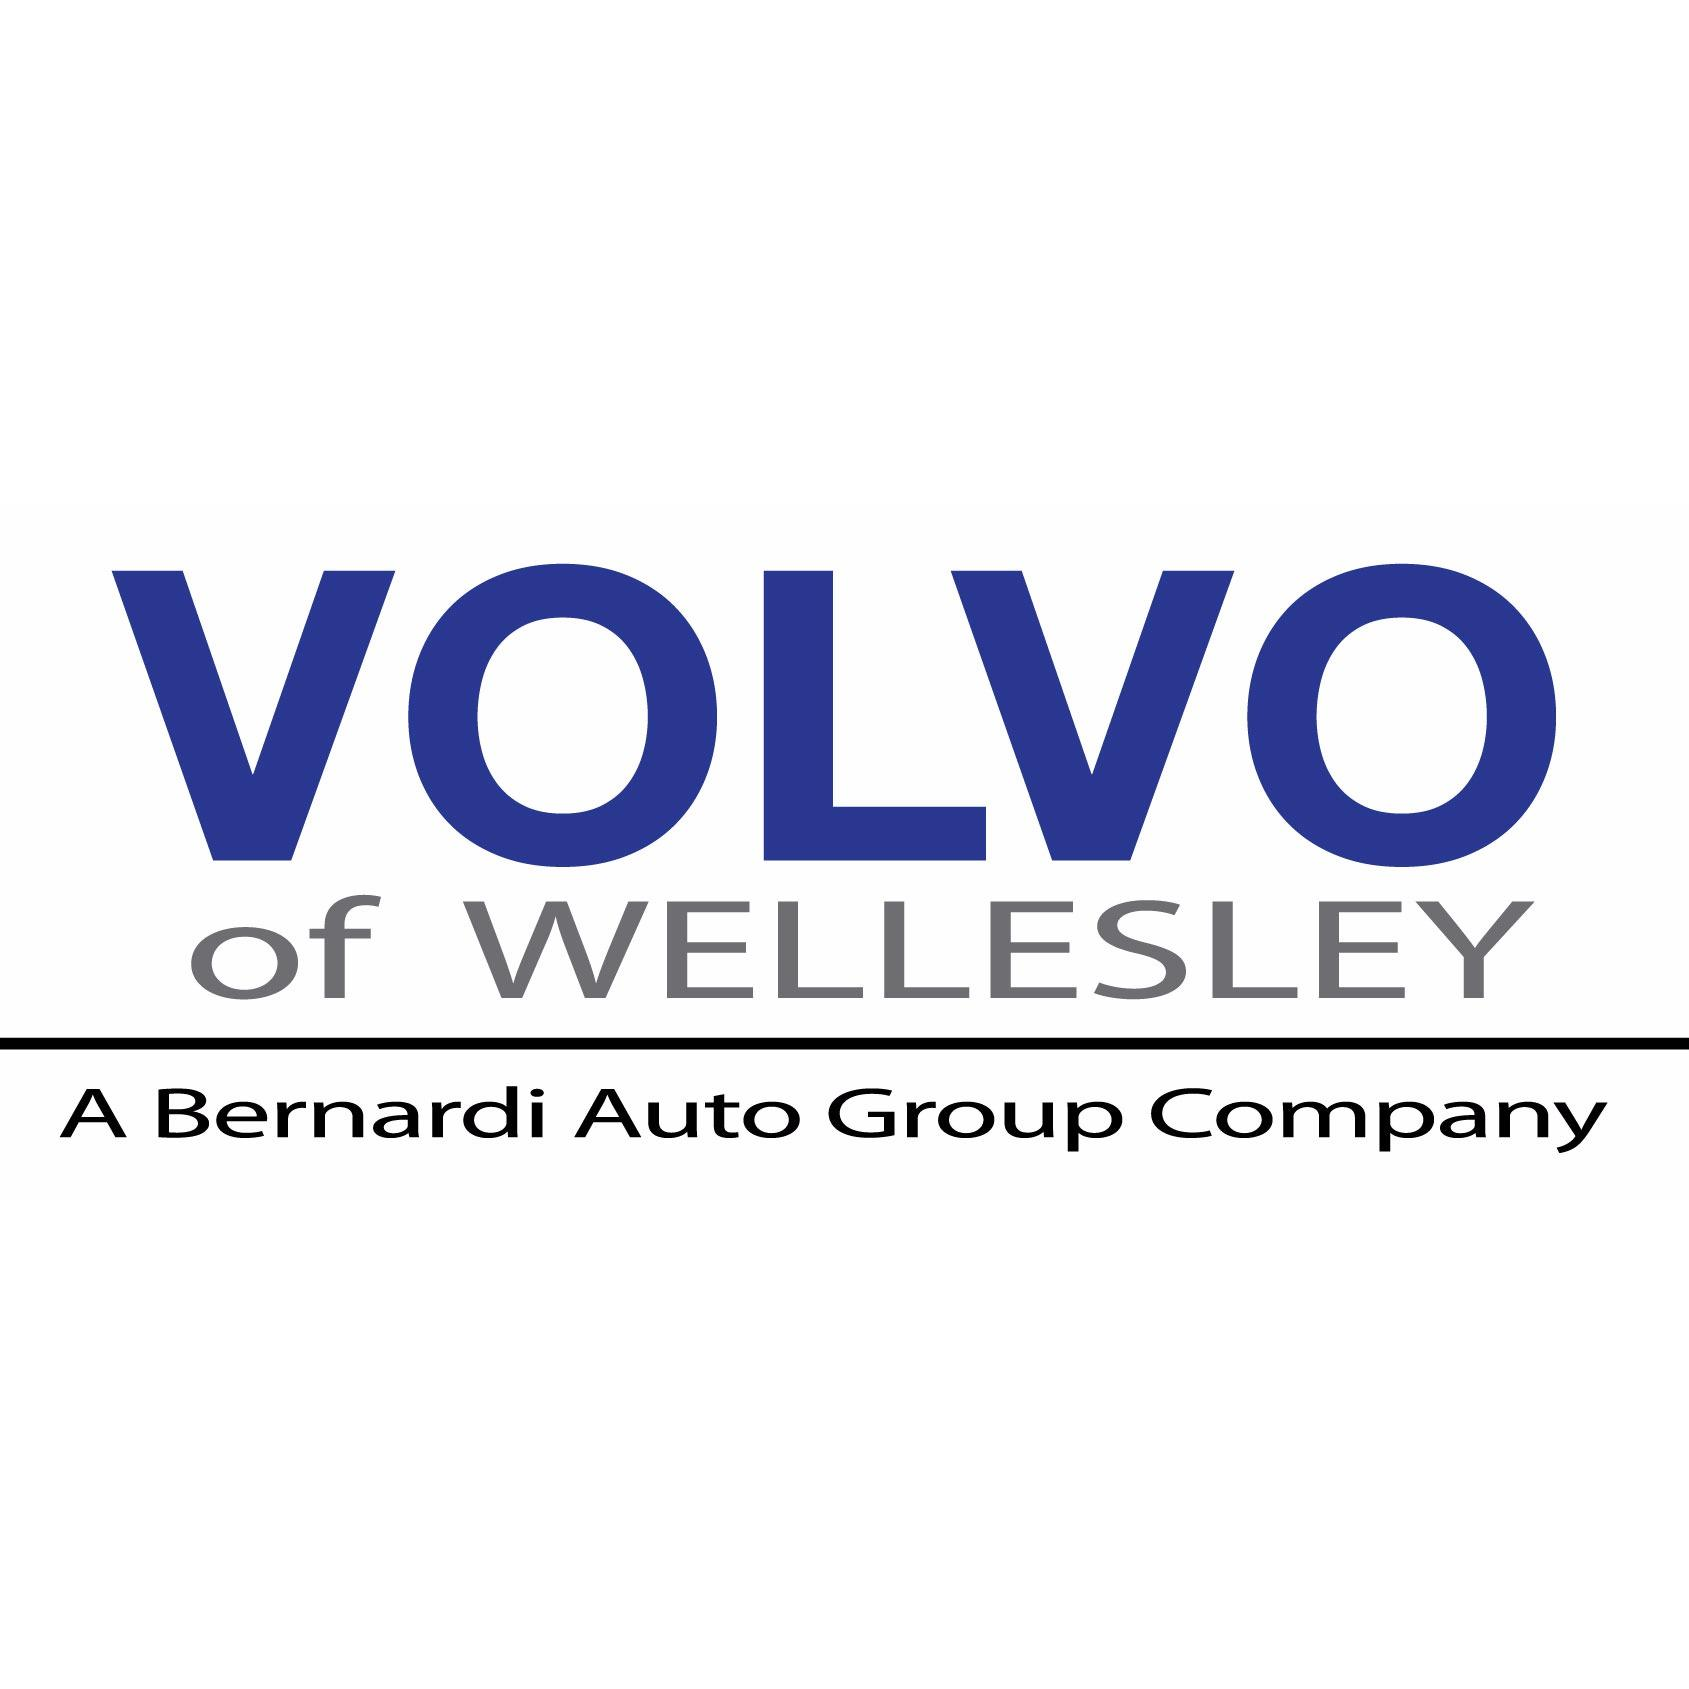 Volvo of Wellesley - Wellesley, MA 02482 - (781)570-5117 | ShowMeLocal.com